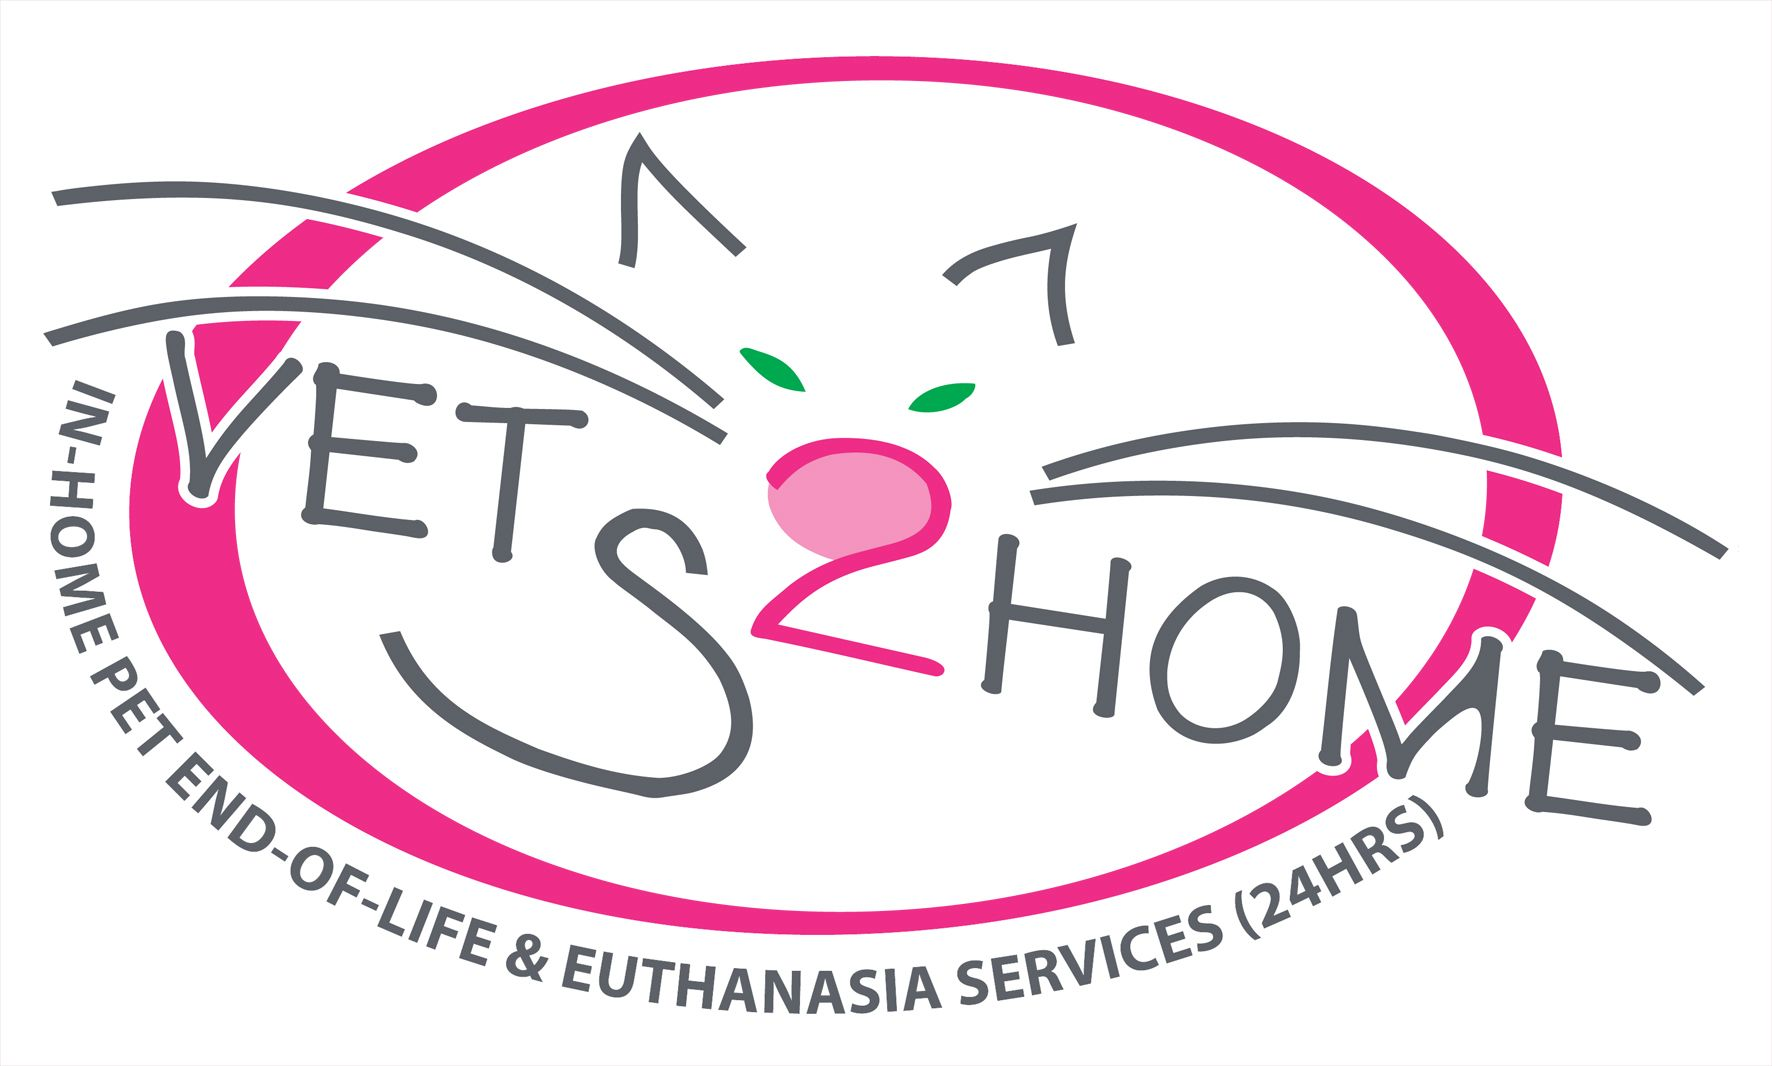 Vets2Home - In-Home End-of-Life & Euthanasia Services (24Hours)